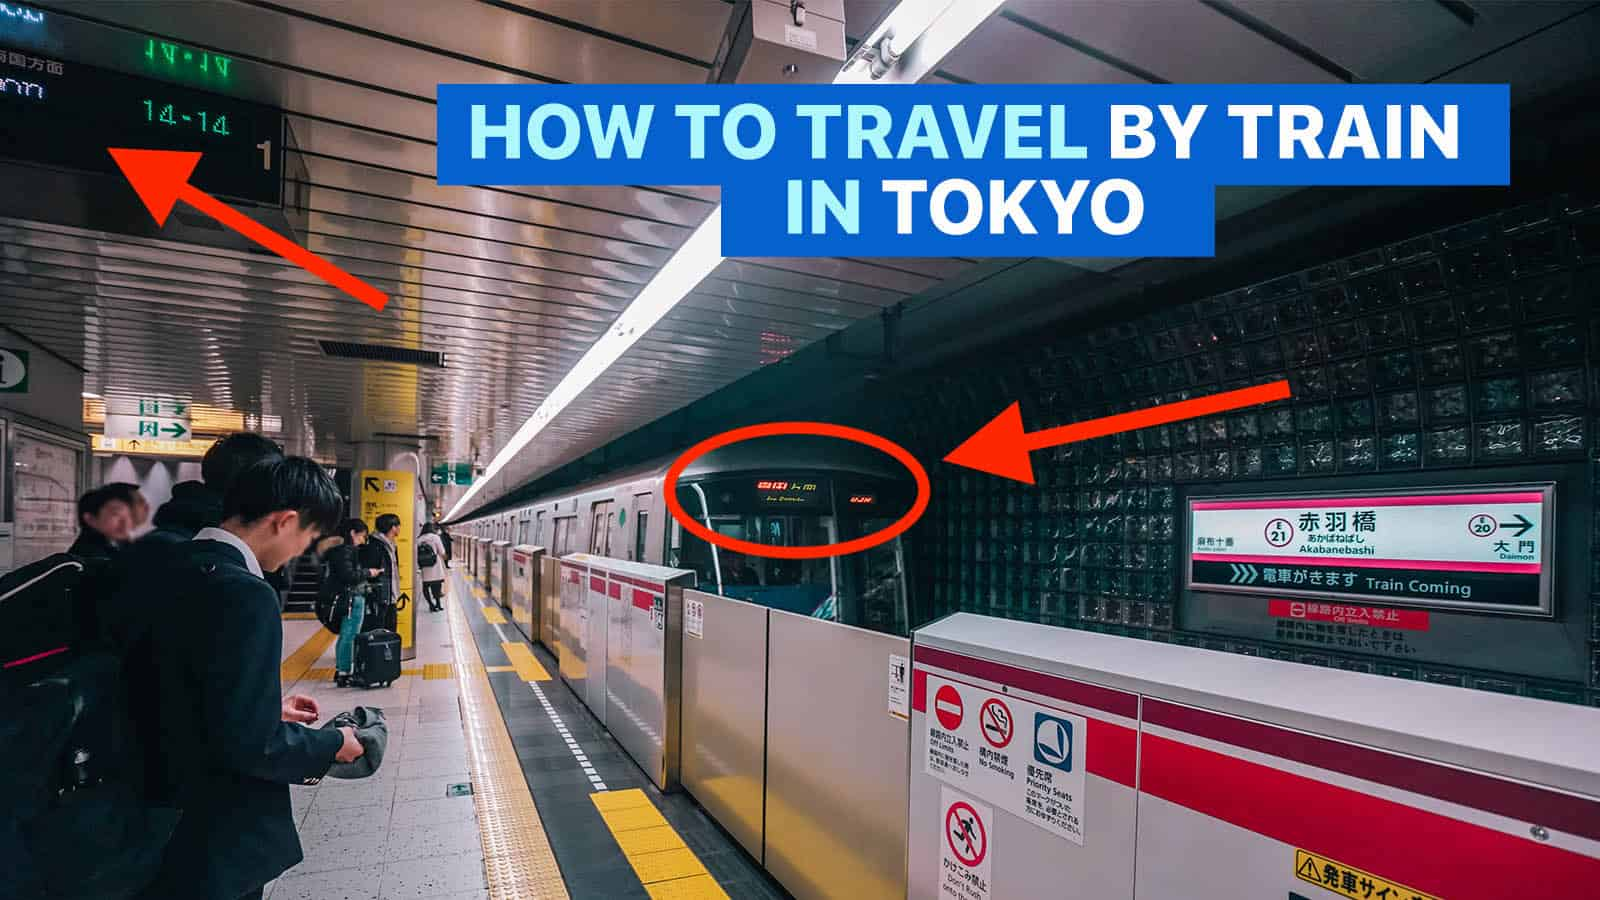 HOW TO GET AROUND TOKYO BY TRAIN: Guide for First Timers